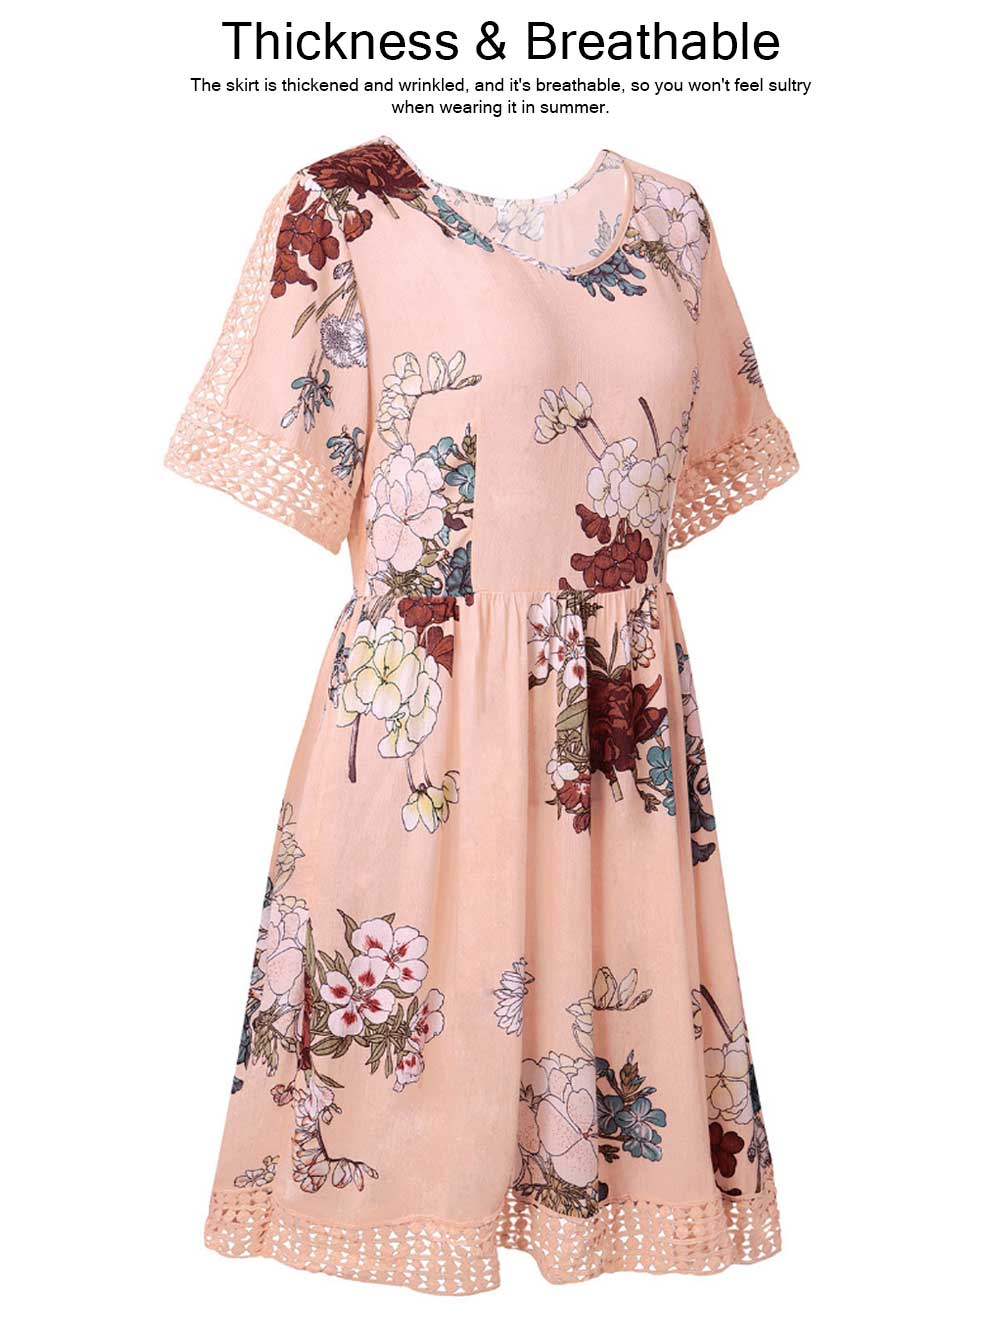 V Neck Women Dress, Breathable Short Dress with Lace Tail, Printing Pink Kilt, Women One-piece Dress Summer Pink 2019 5